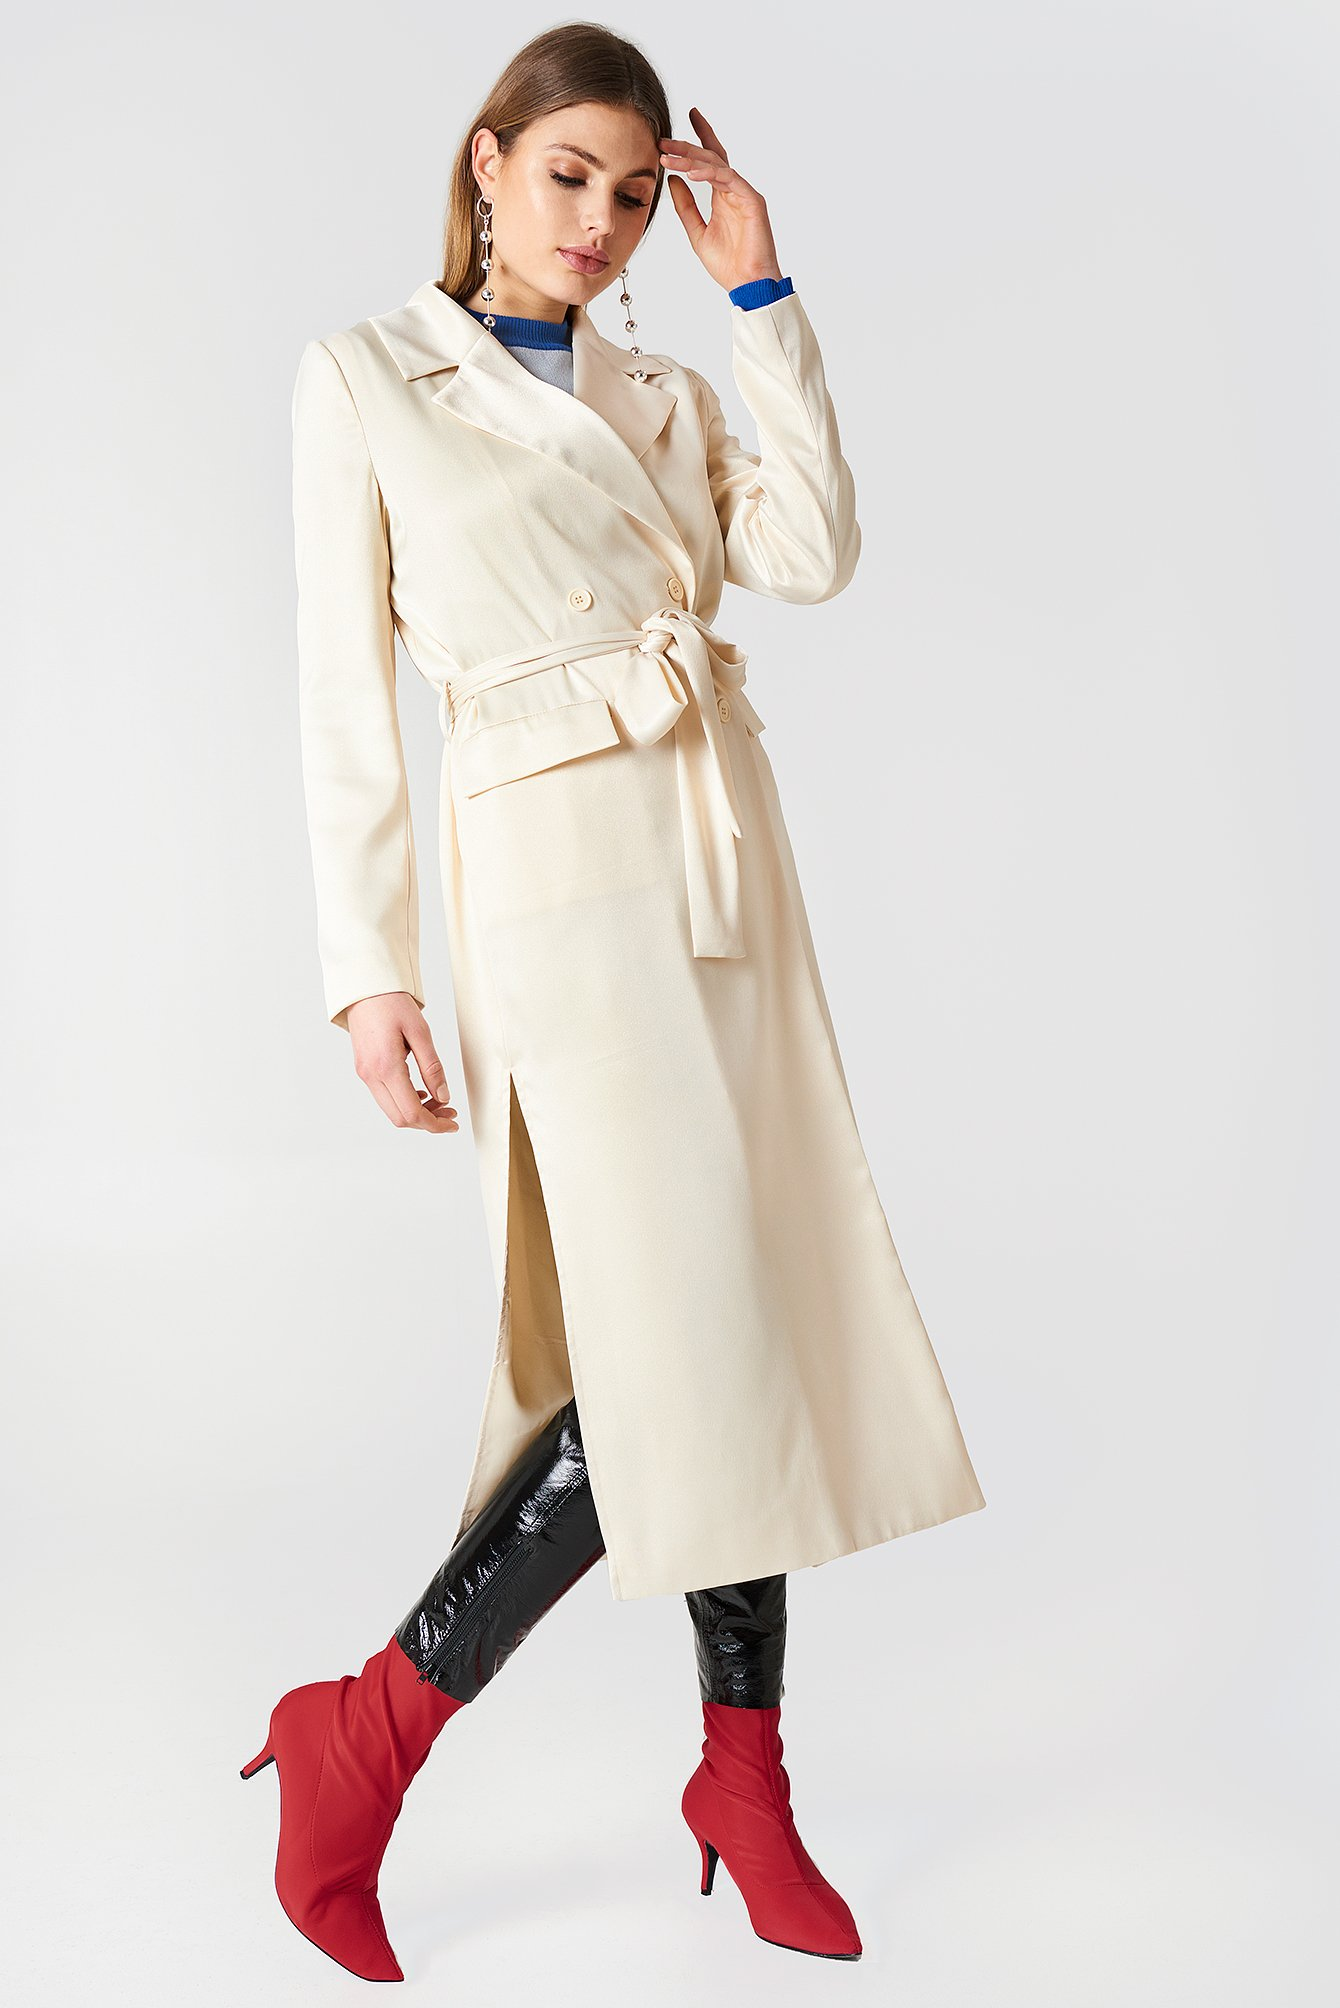 SATIN COAT - OFFWHITE